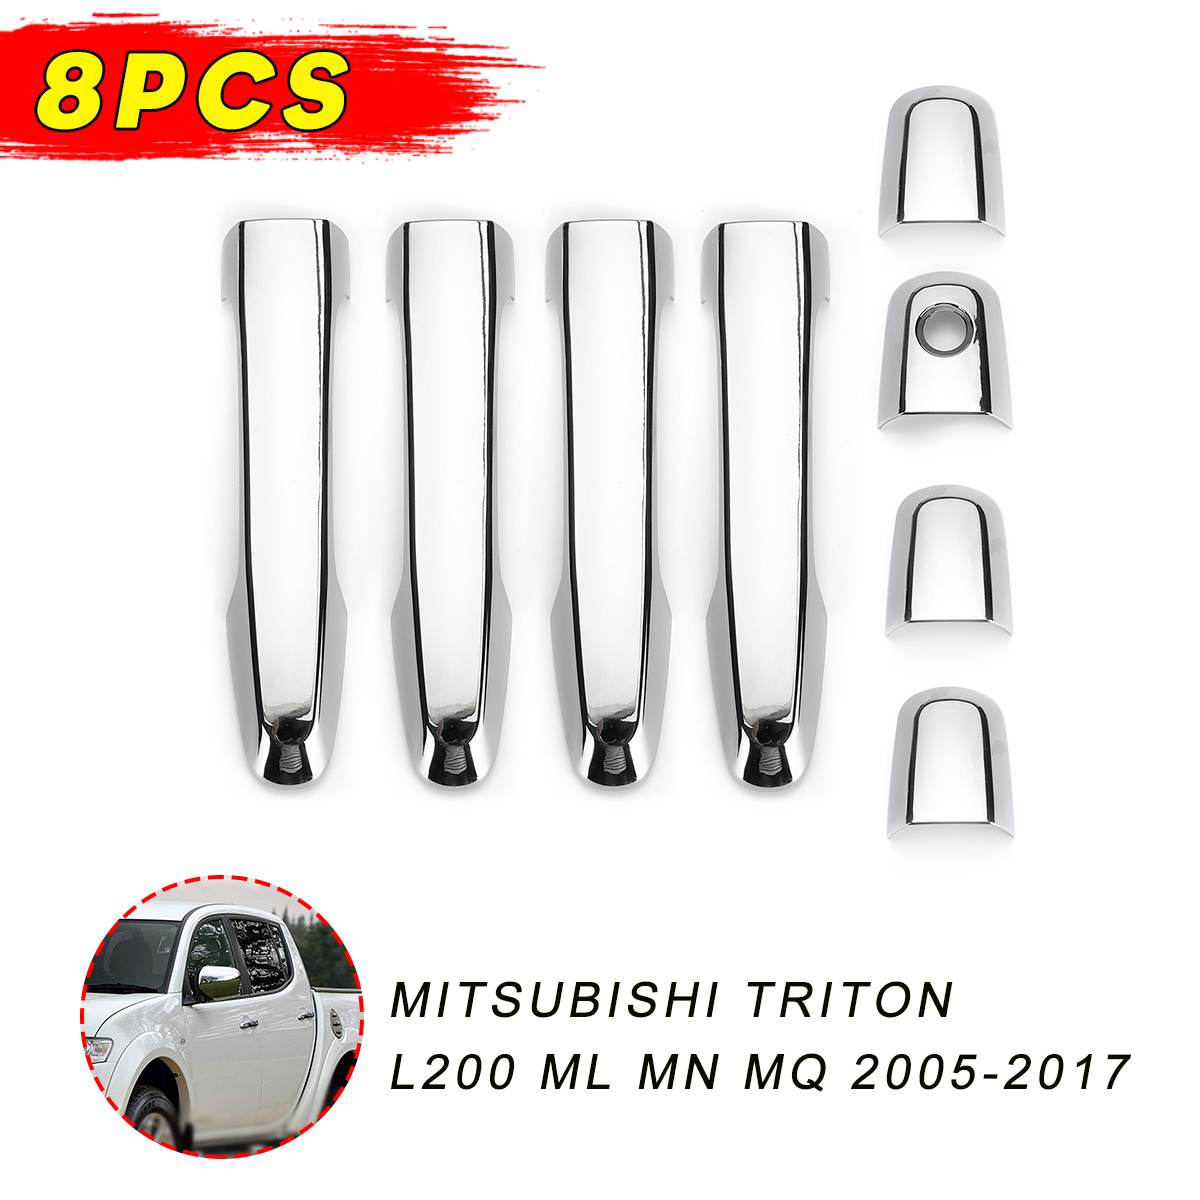 1 Set For Mitsubishi triton L200 ML MN MQ 2005-2017 Chrome Car Door Handle Cover Exterior Accessories image